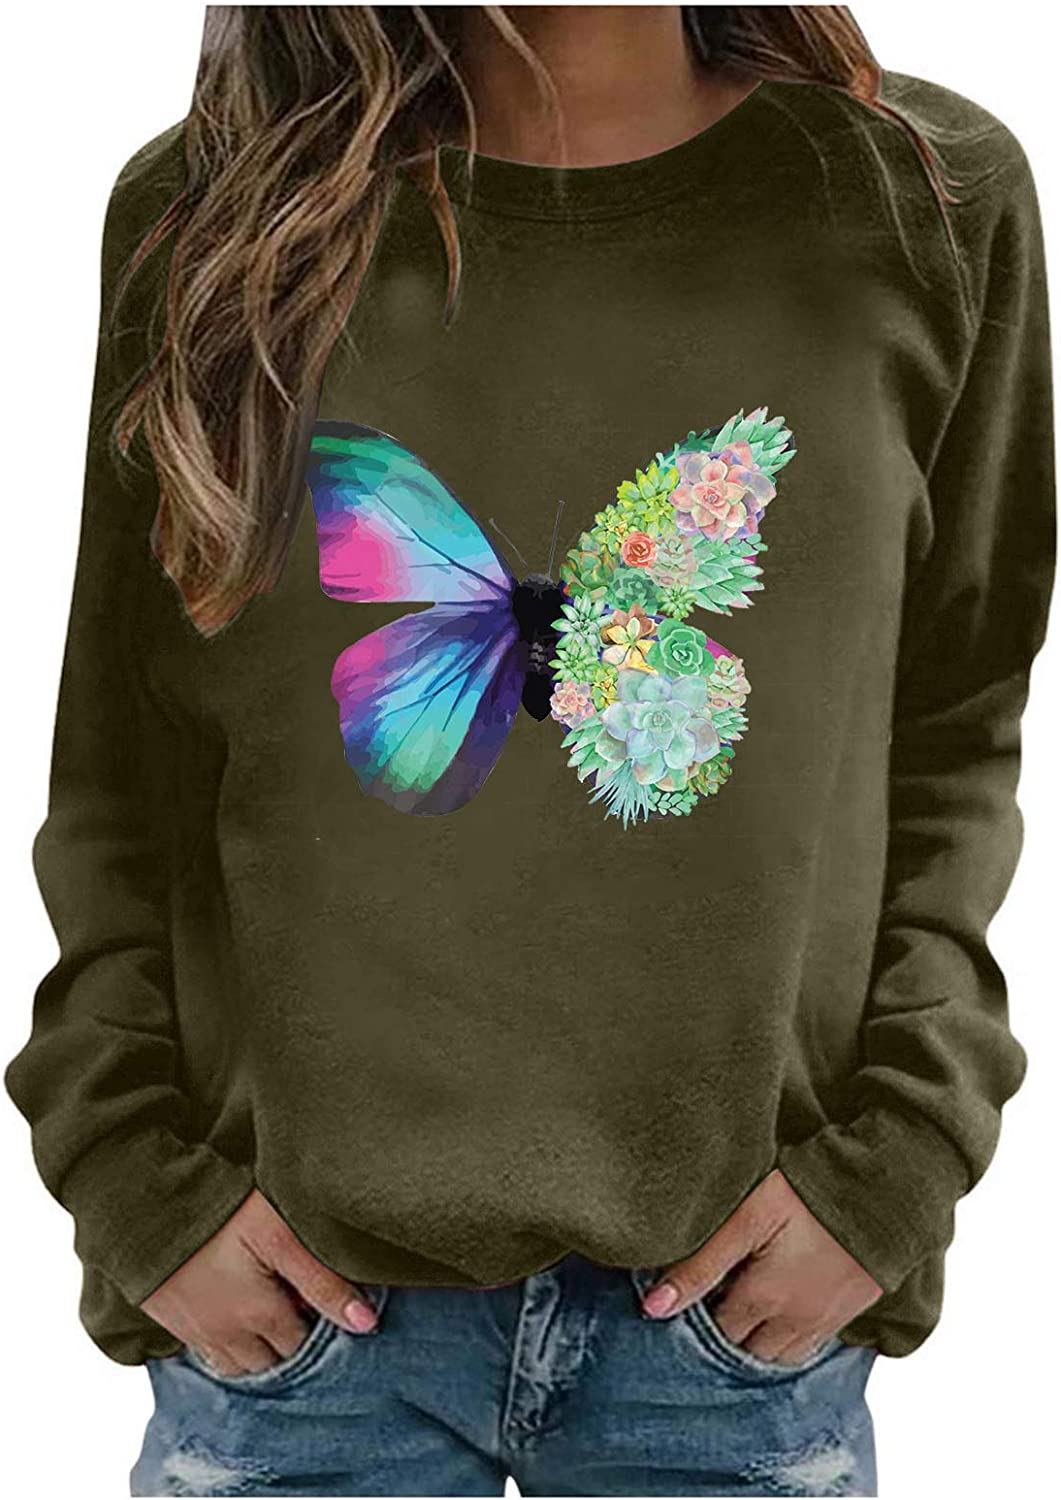 Oversized Sweatshirts for Women Vintage Butterfly Print Fashion Casual Long Sleeve Pullover Sweatshirt Tops Blouse